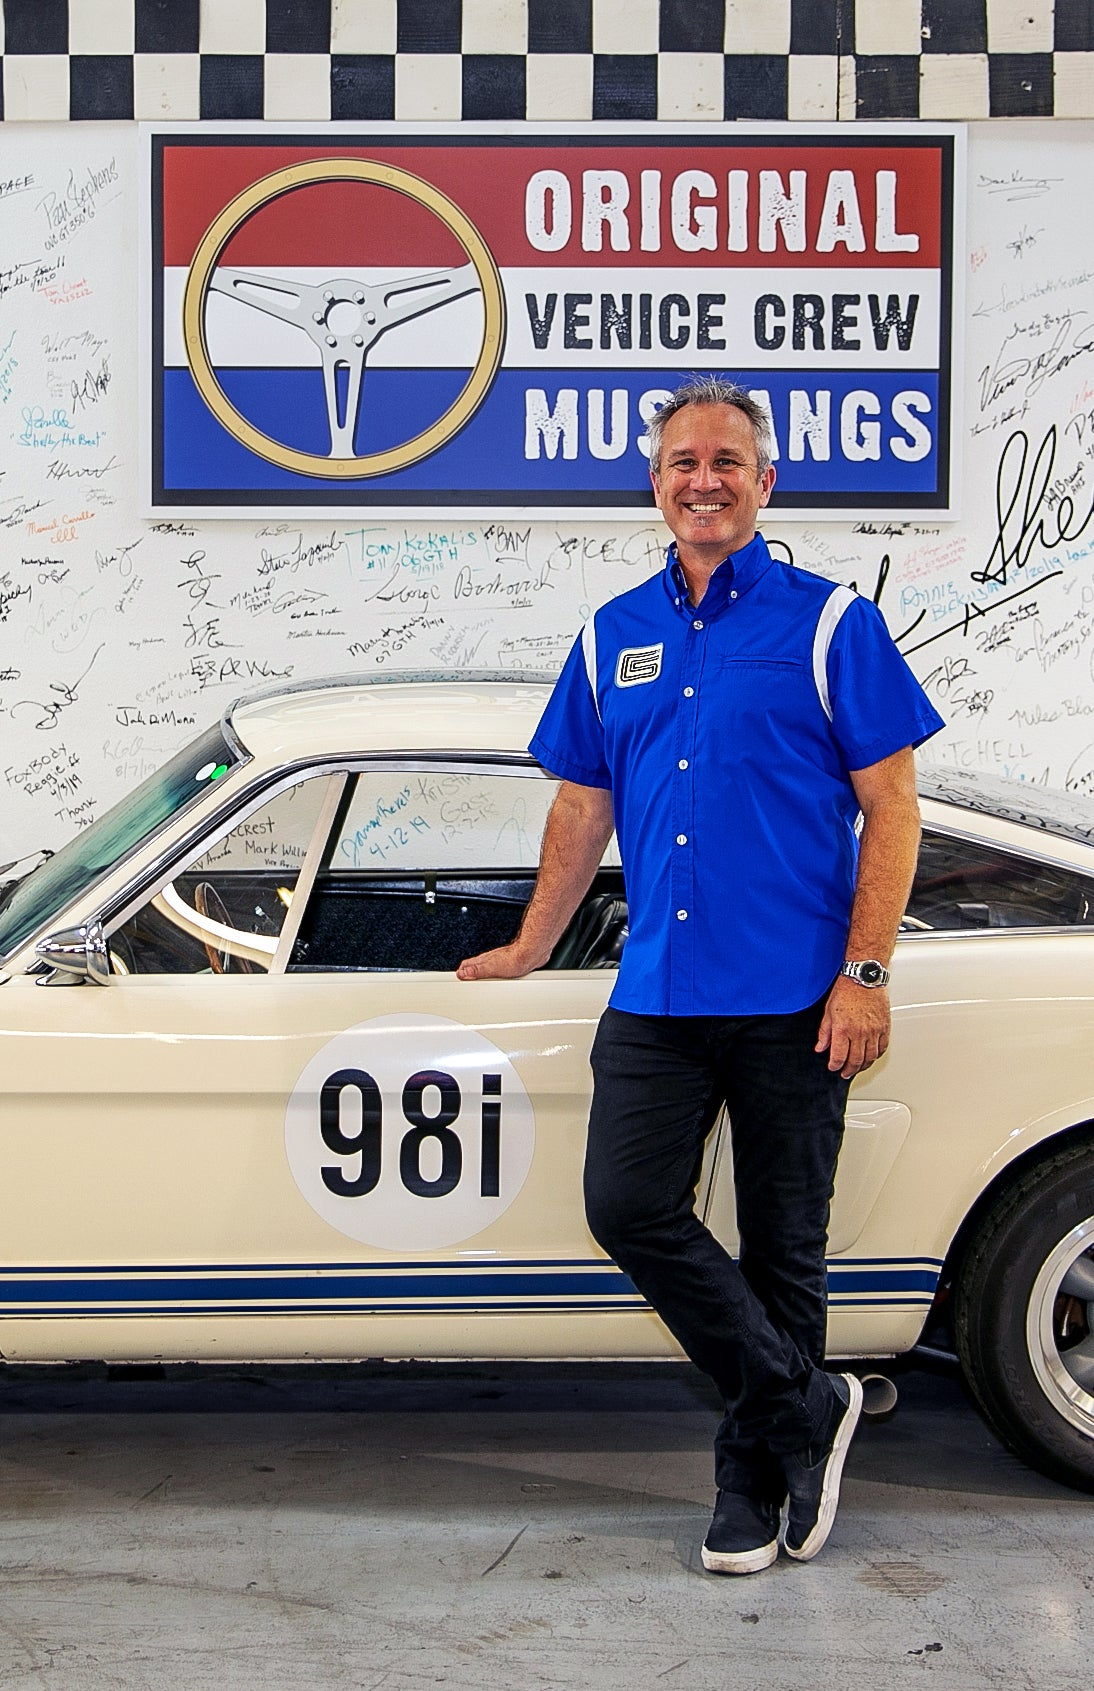 Image of Shelby American Iconic Blue Team Shirt